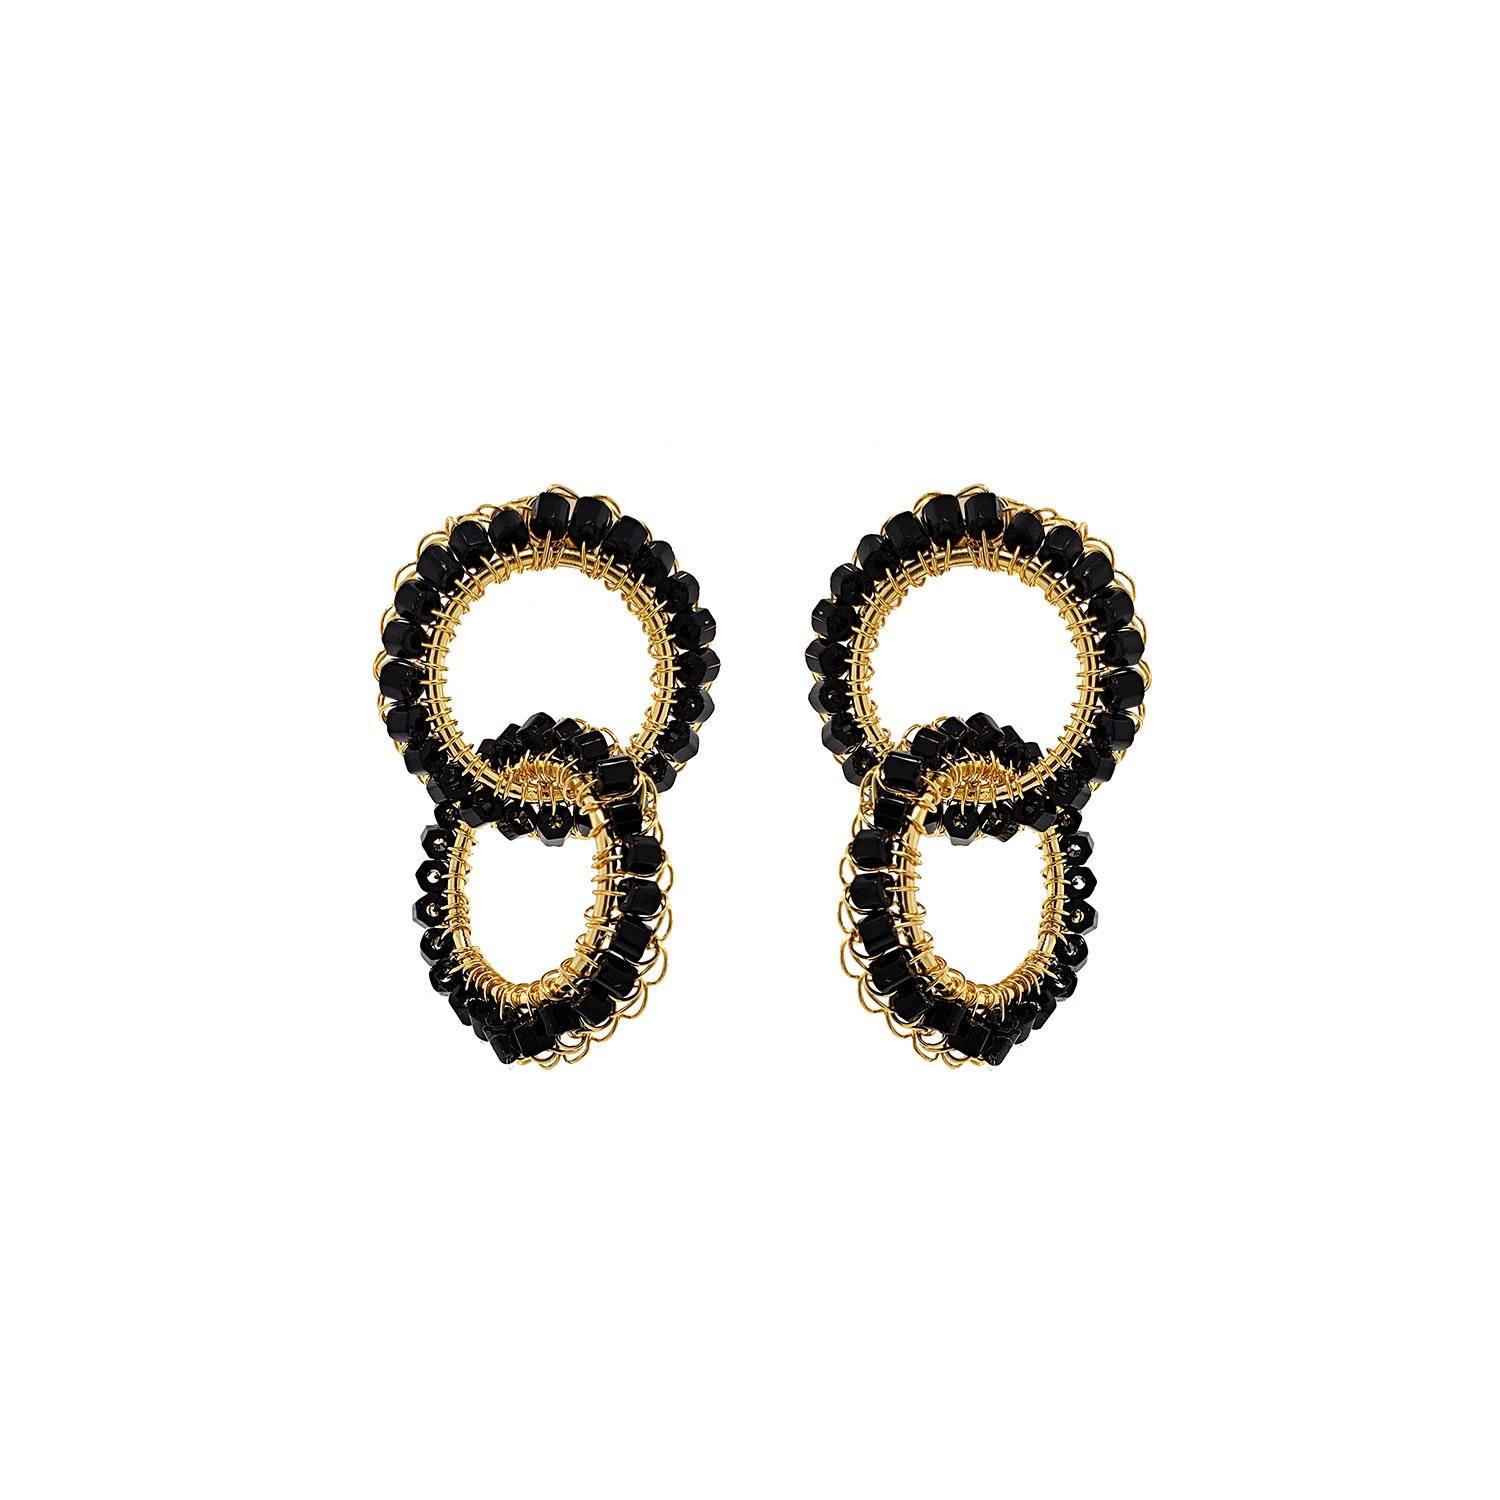 pair of double hoop earrings made of gold wire and black crystals